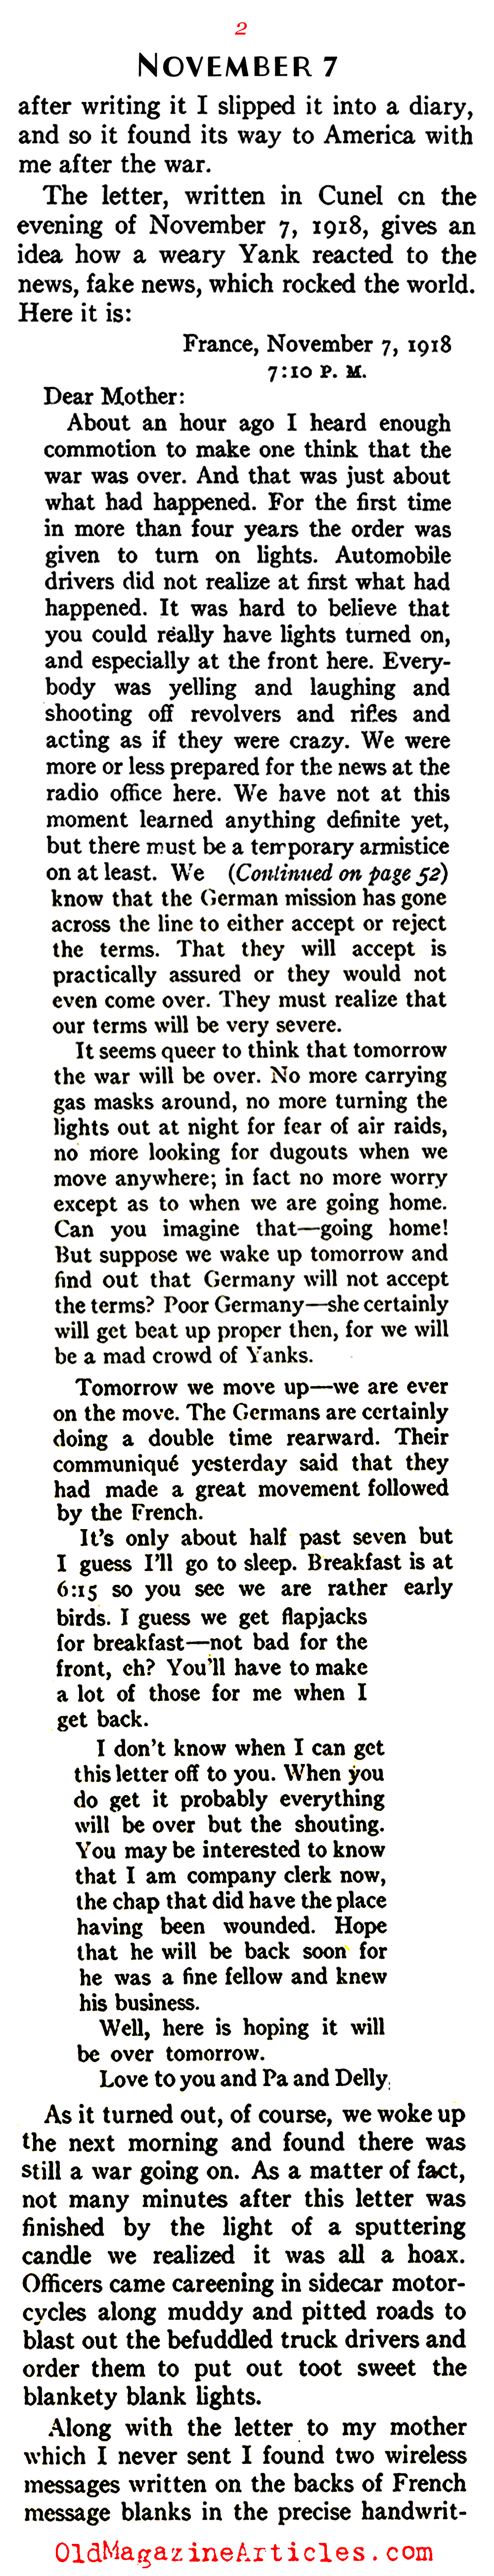 The German Peace Delegation Crosses the Lines (American Legion Monthly, 1938)